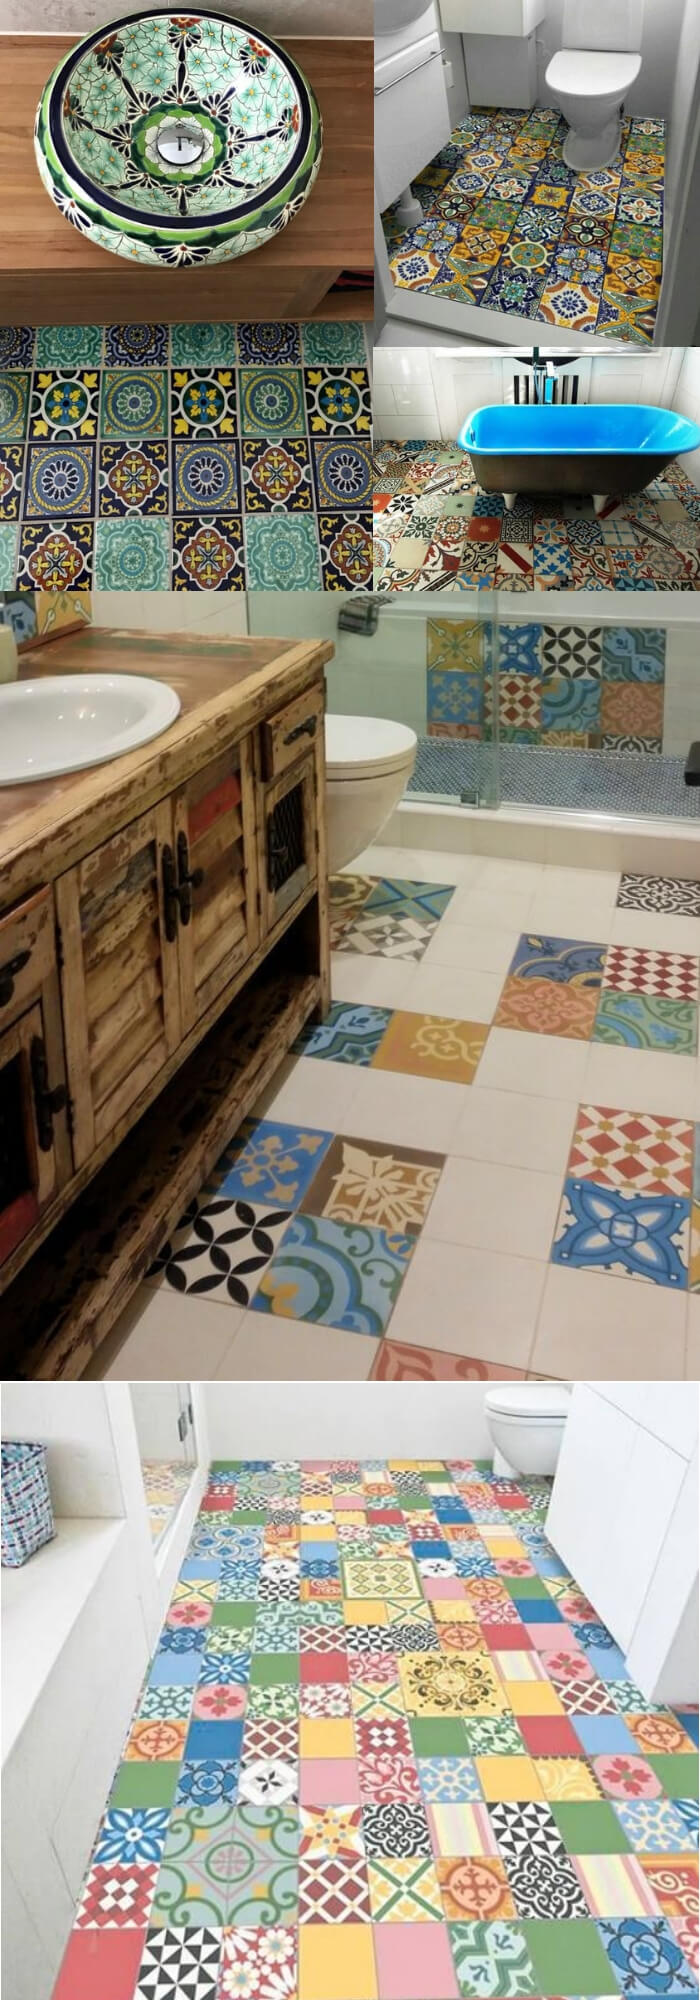 10+ Unique Bathroom Floor Tile Designs & Ideas For 2019